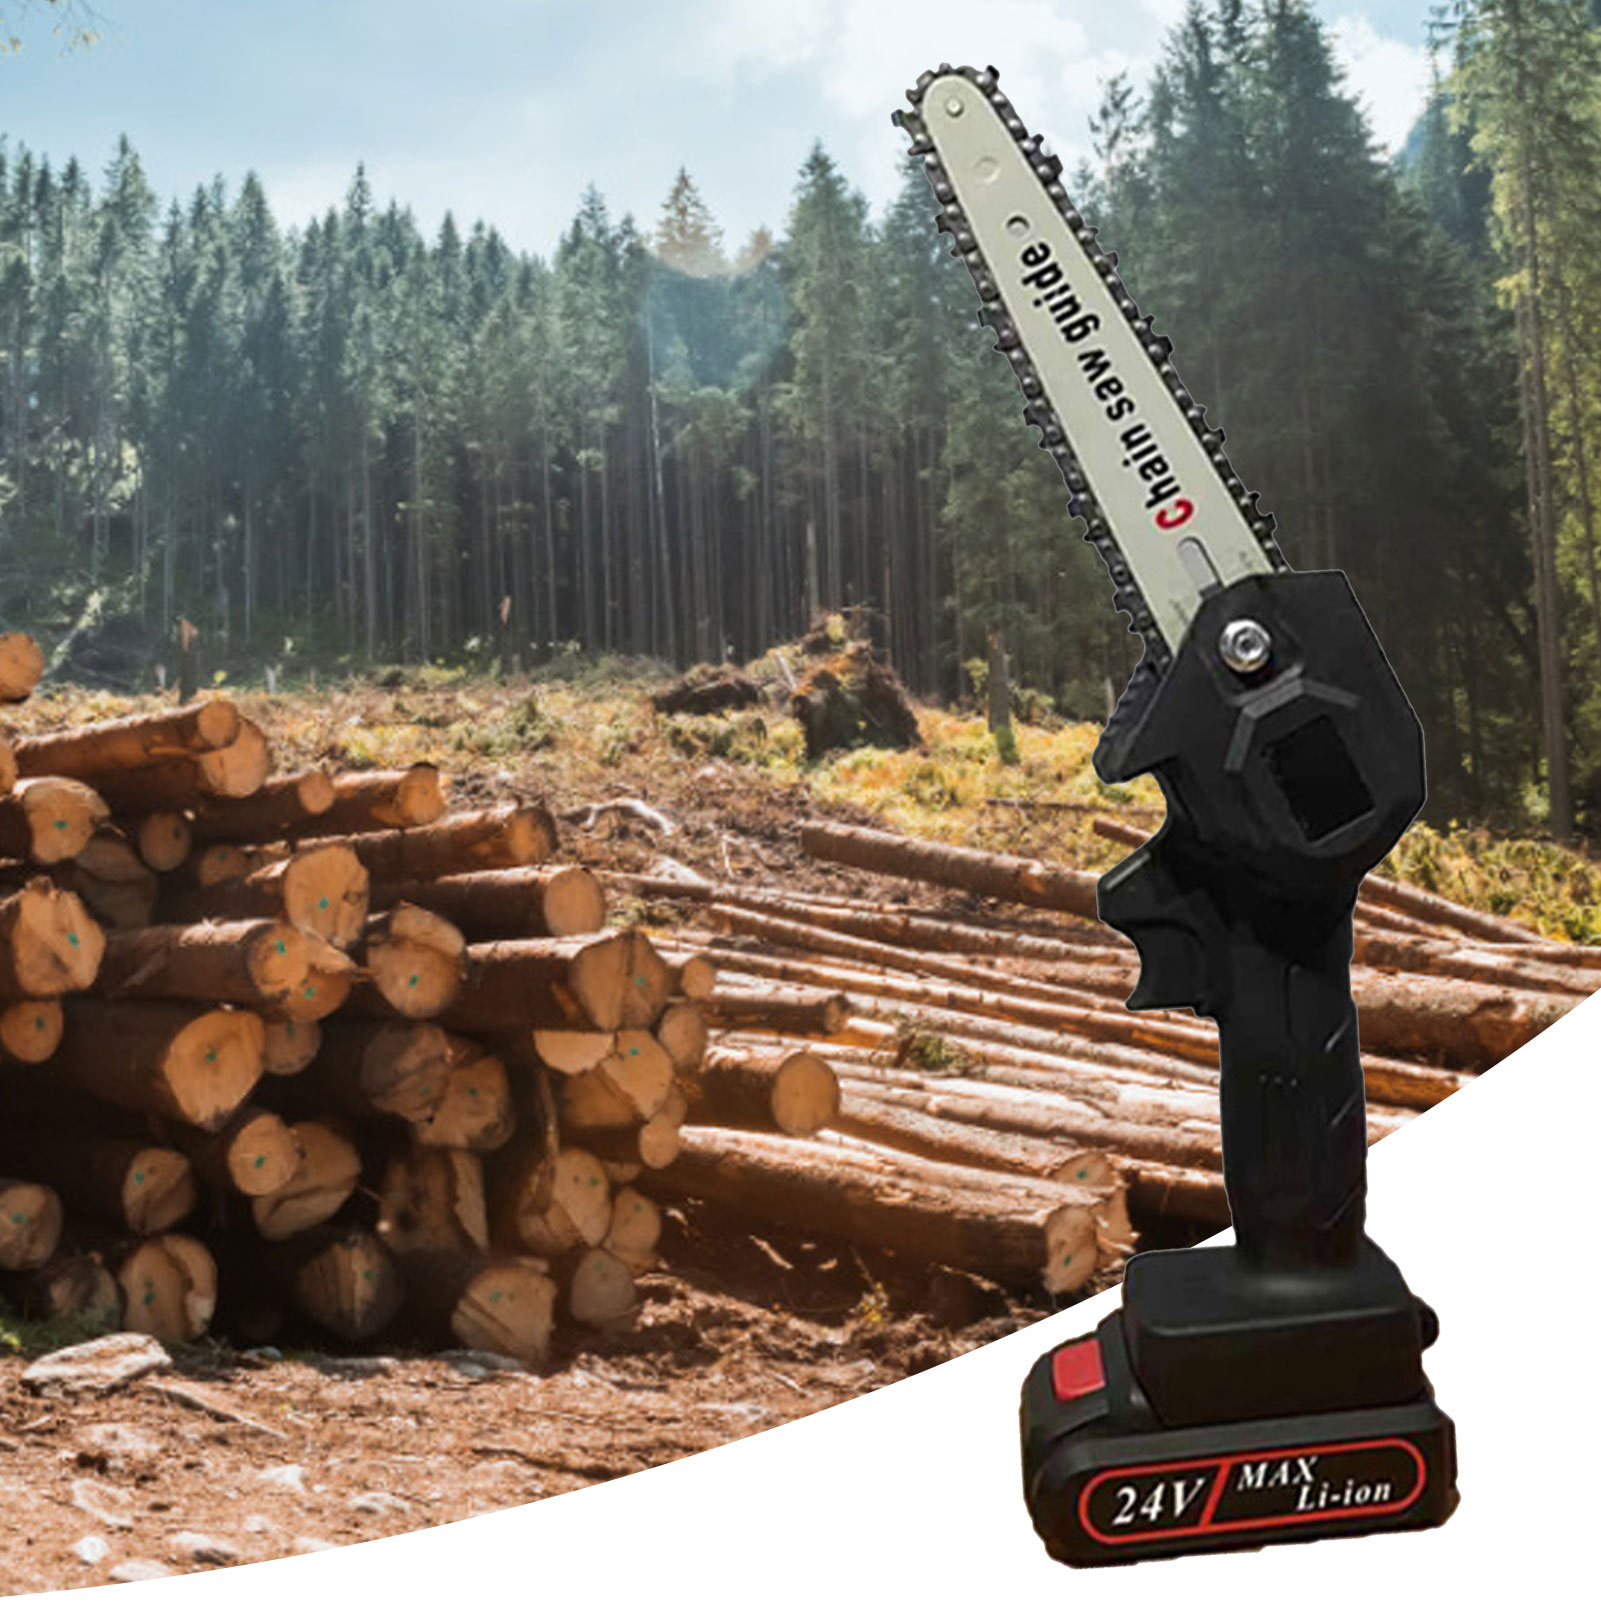 6 Tree Chainsaws Saw Battery Fruit Pruning One Removable For Trimming 550W Inch With Garden Mini Handed Electric Lithium